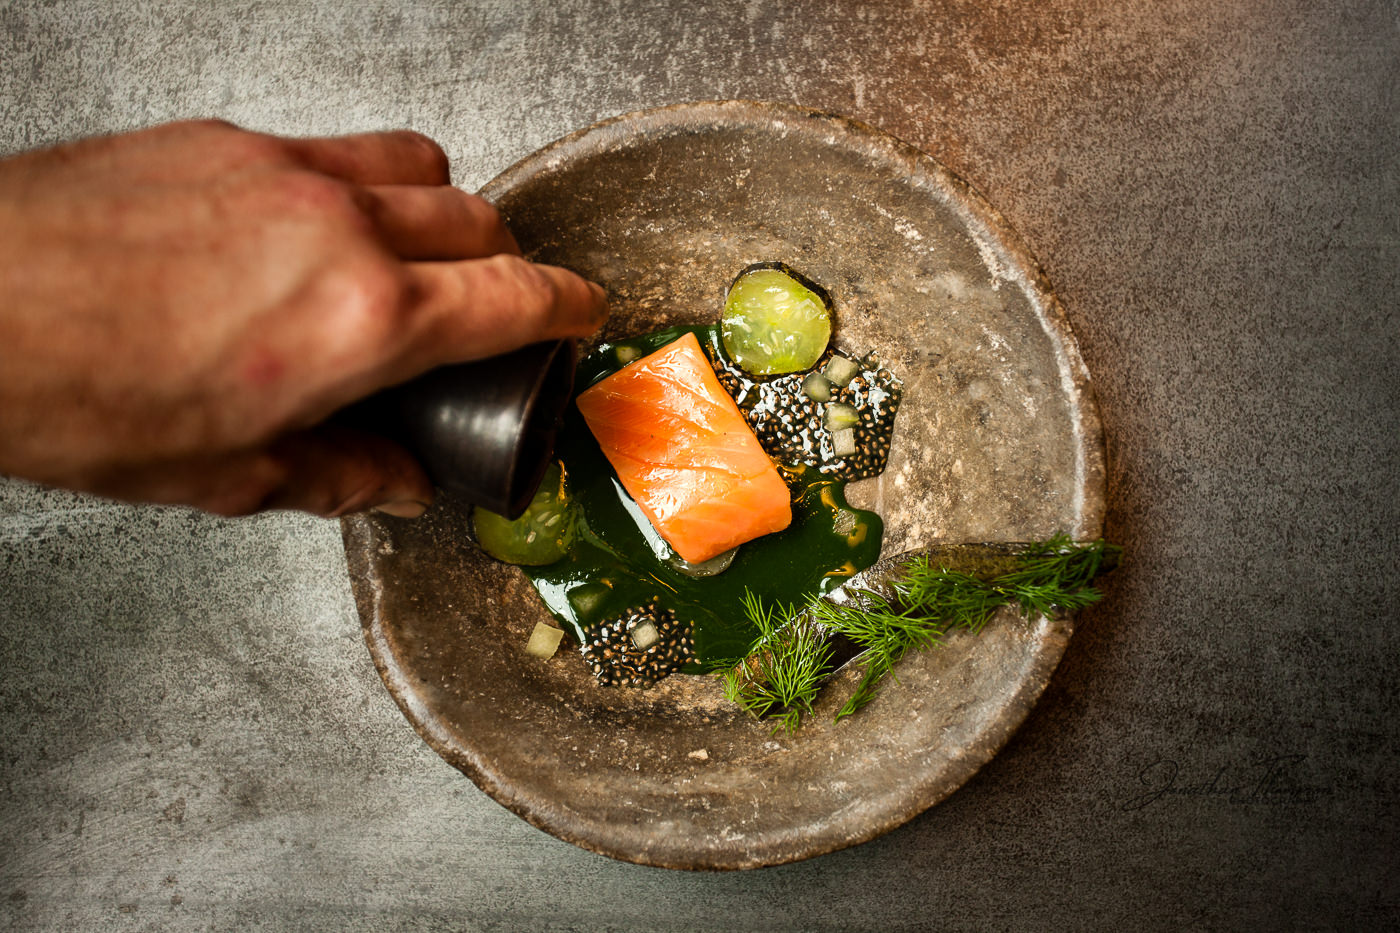 Hand pouring green liquid into a stone bowl containing a fish dish